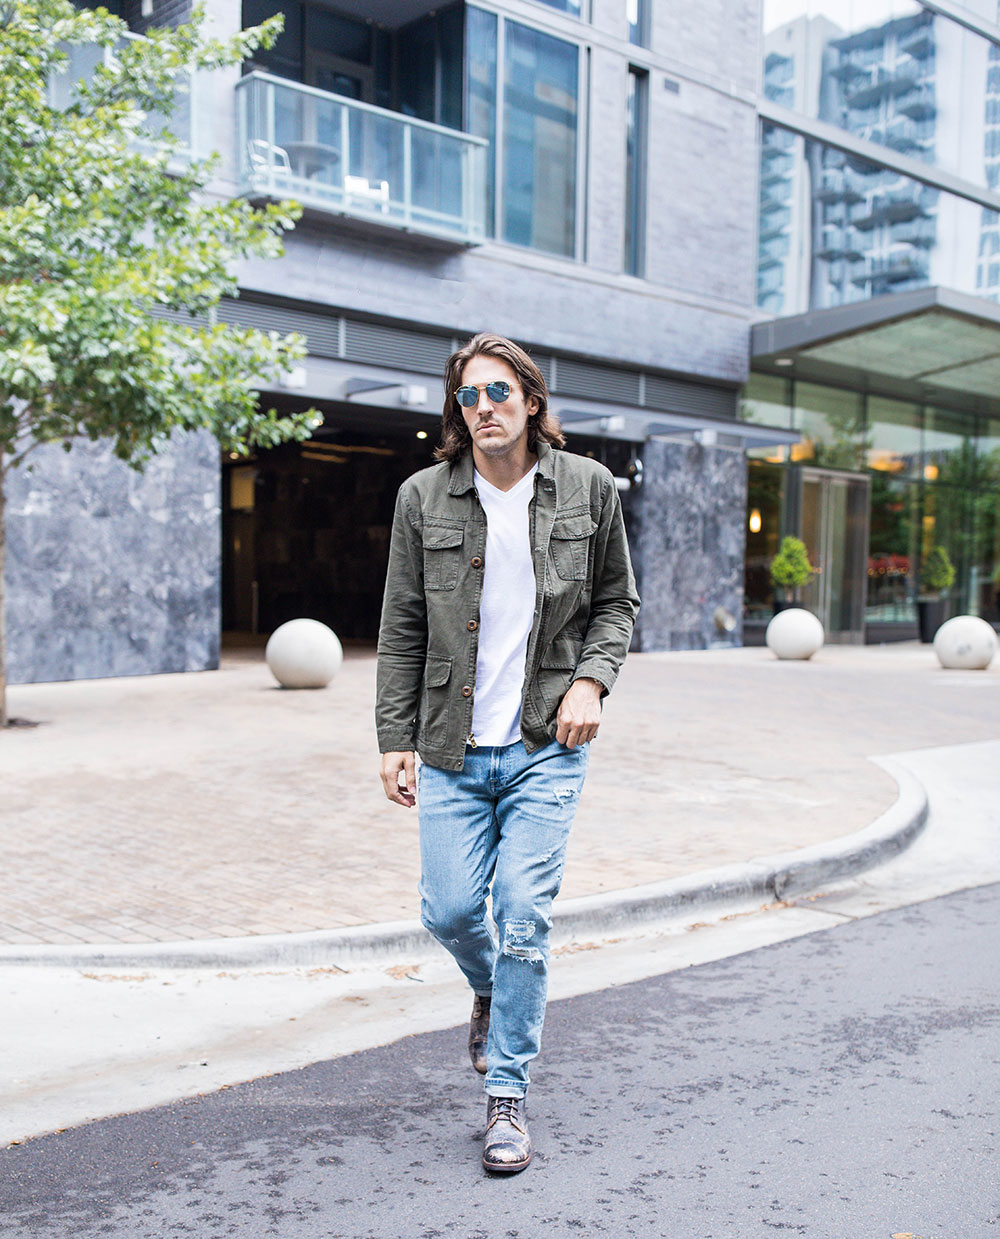 Crossing Street in Mens Green Military Jacket - White V Neck Tee - Distressed Denim - Black Distressed Boots BED | STU